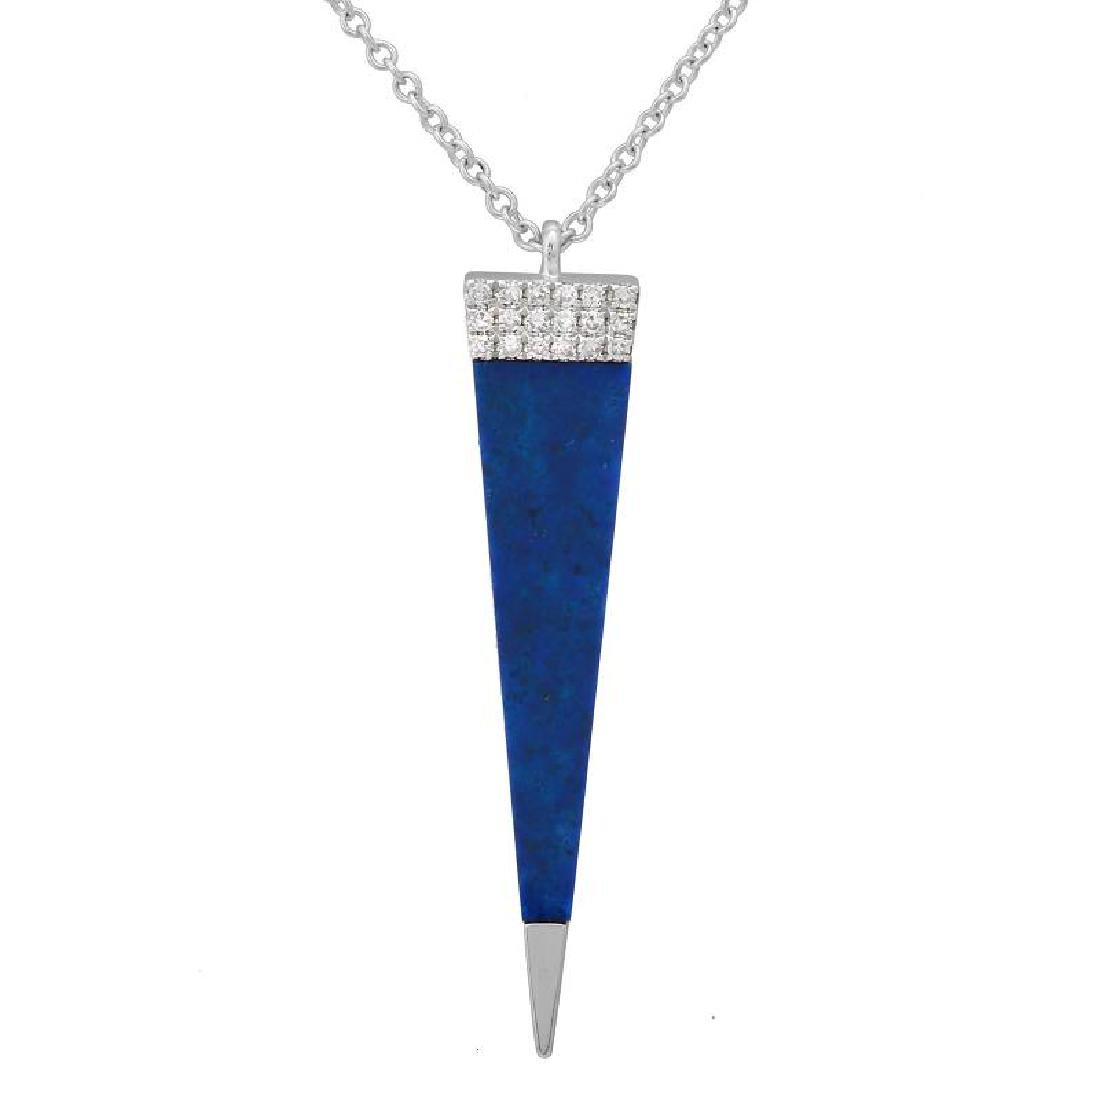 14KT White Gold Gemstone Pendant With Chain